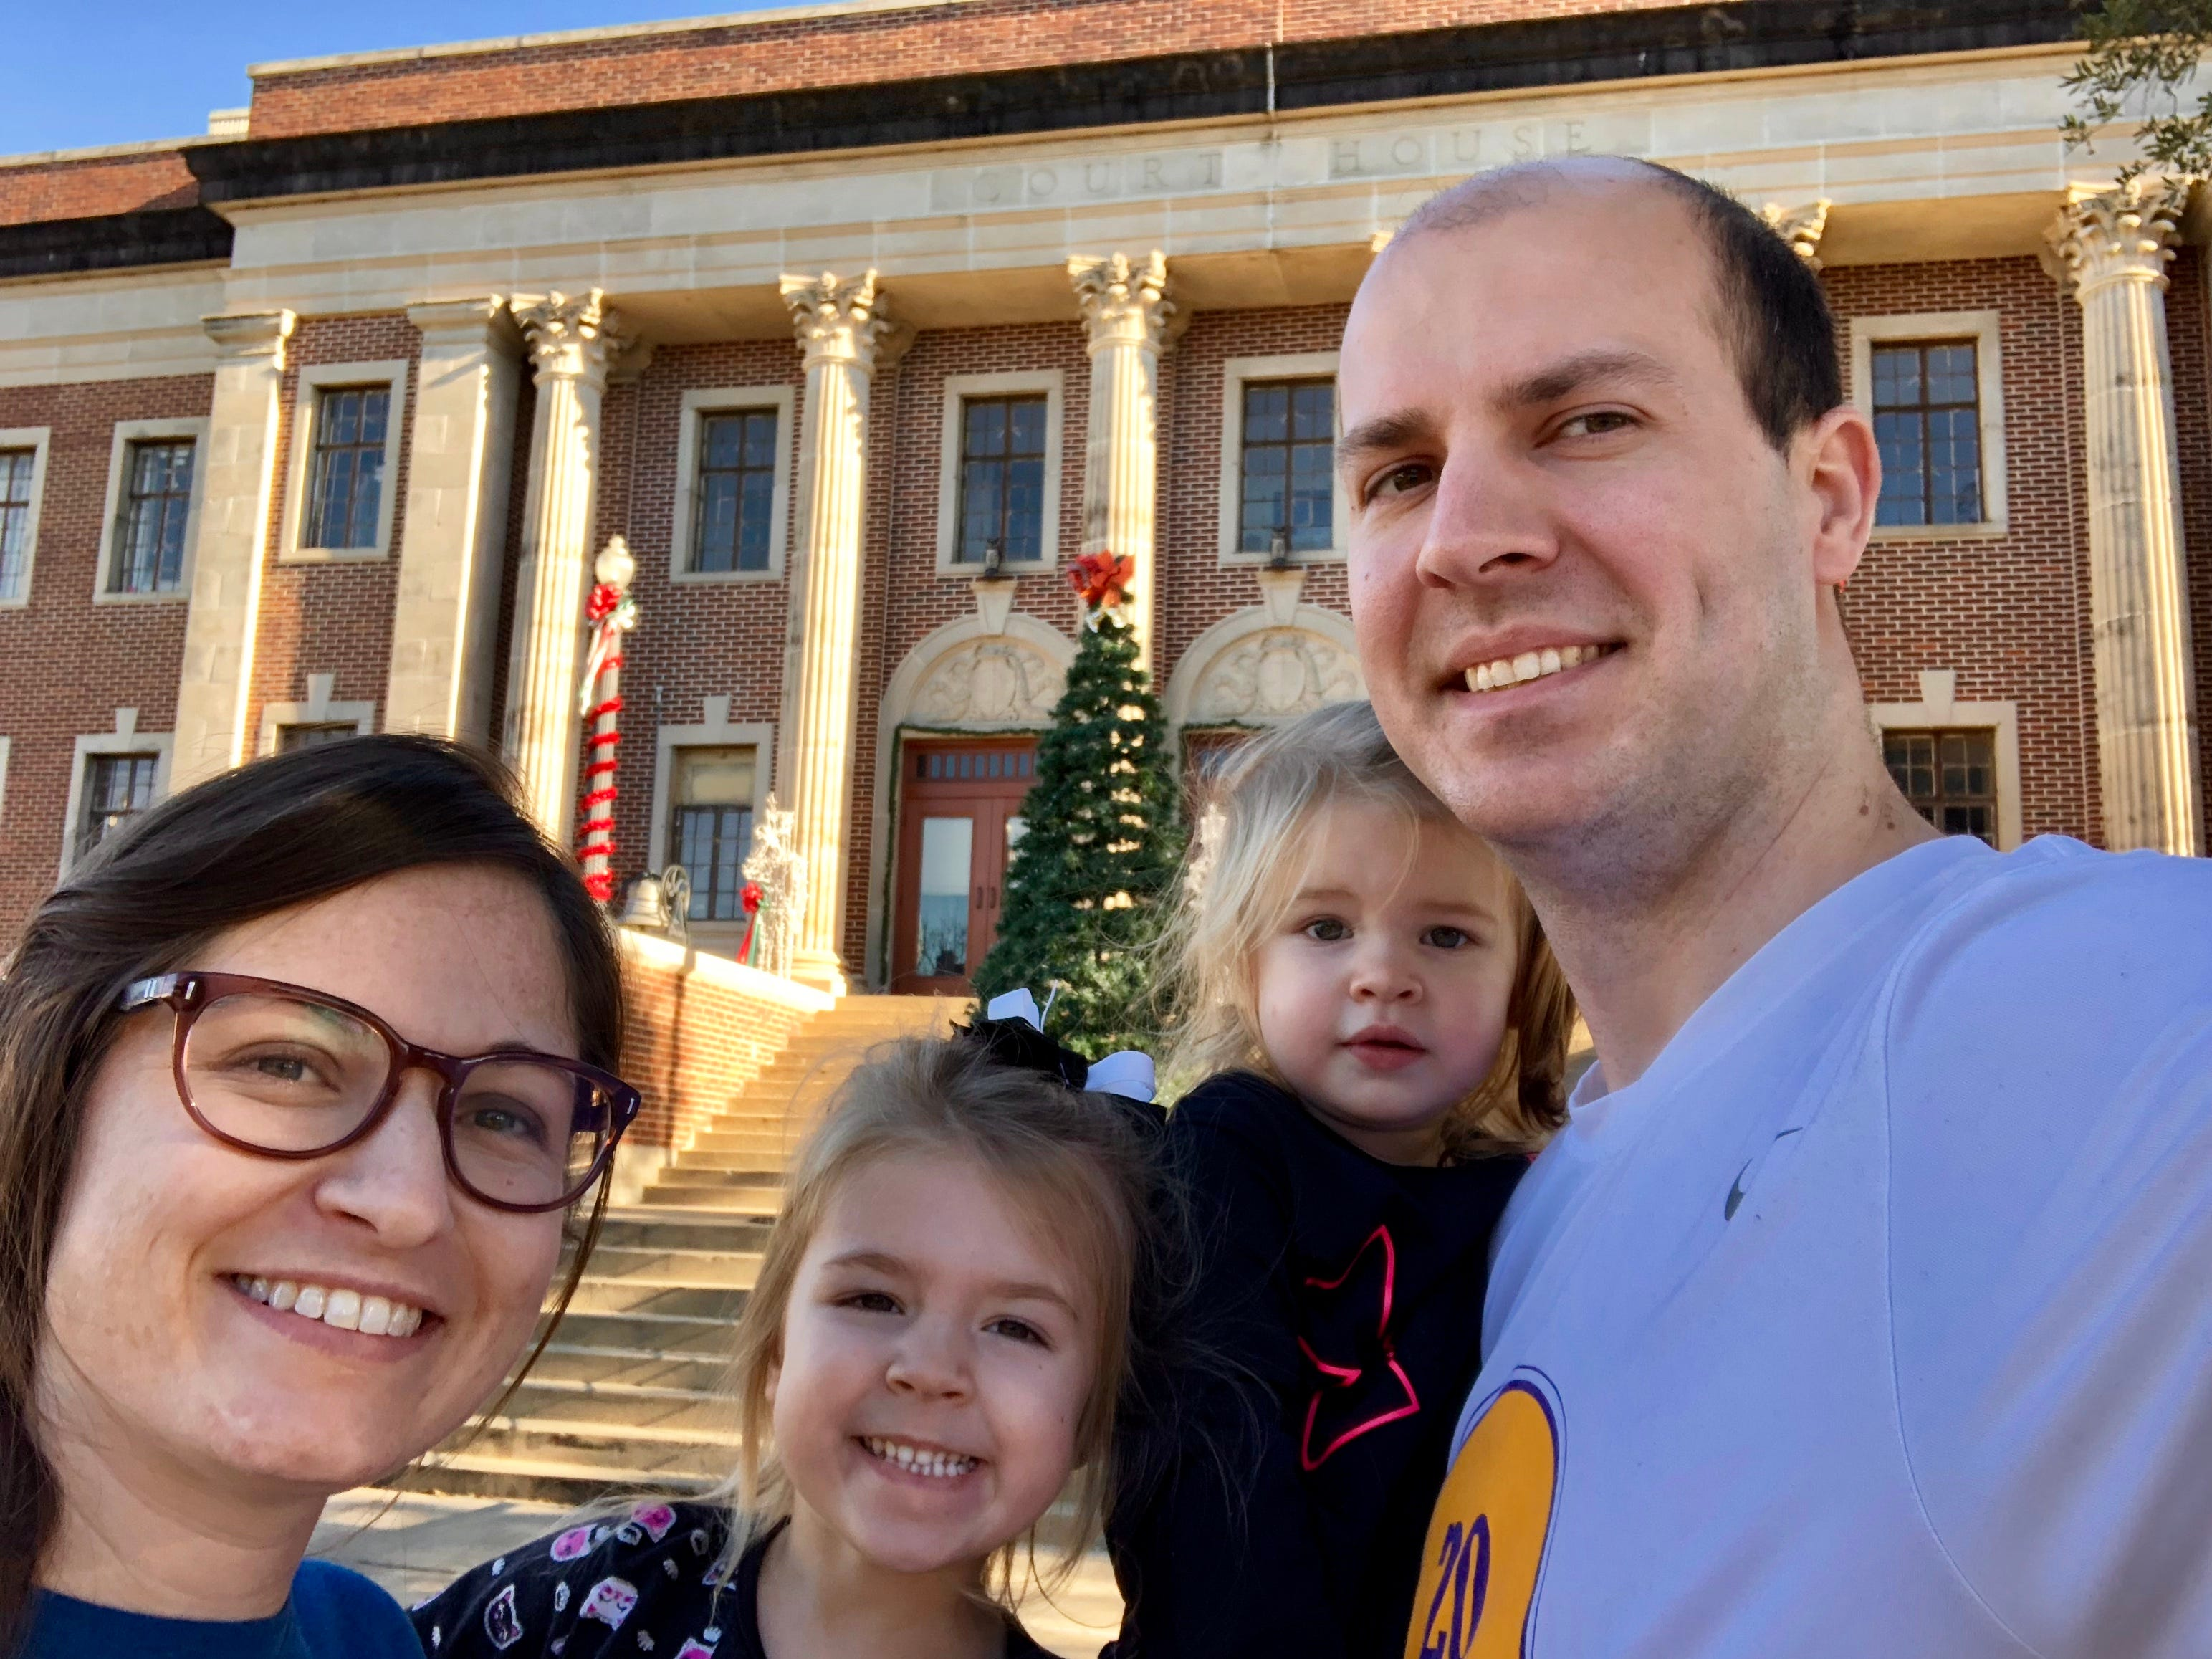 The Northup Trail ends at the historic courthouse in downtown Marksville. In the 1840s Solomun Northup was kidnapped as a free man black in New York and sold into slavery in Central Louisiana, where he lived for 12 years until he regained his freedom at this courthouse. Reporter Leigh Guidry and family followed the trail Saturday.